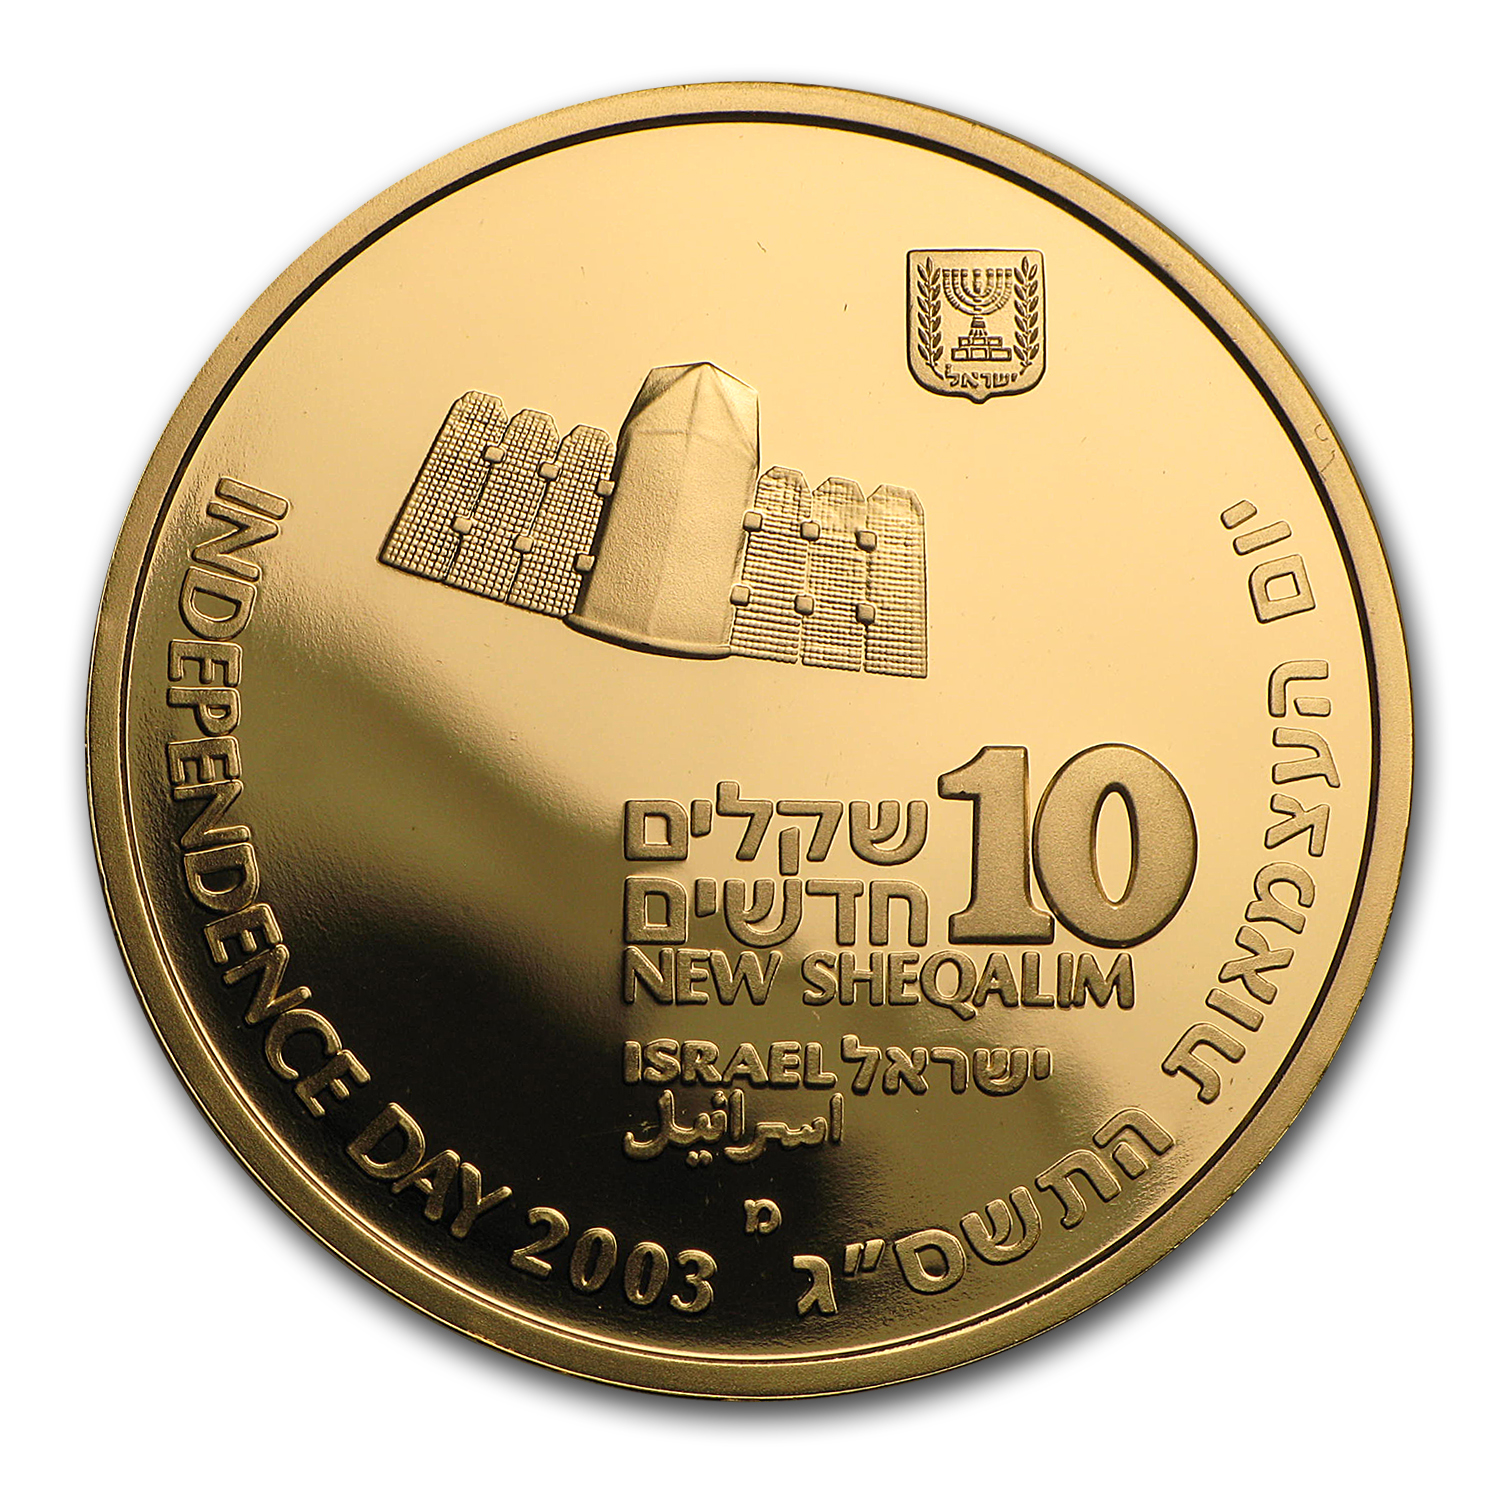 2003 Israel Proof 1/2 oz Gold 10 Sheqalim Space Program